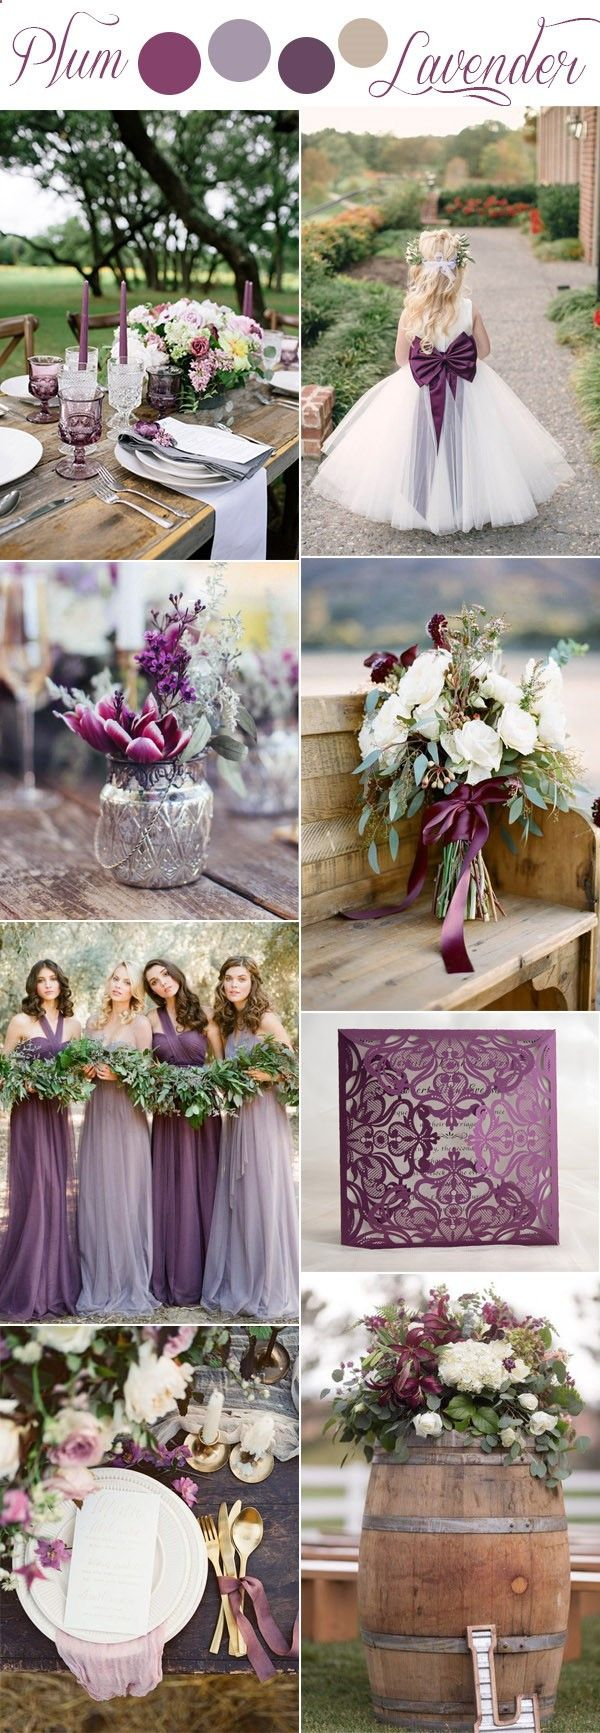 Wedding decoration ideas purple  plum lavender and lilac shades of purple romantic rustic wedding